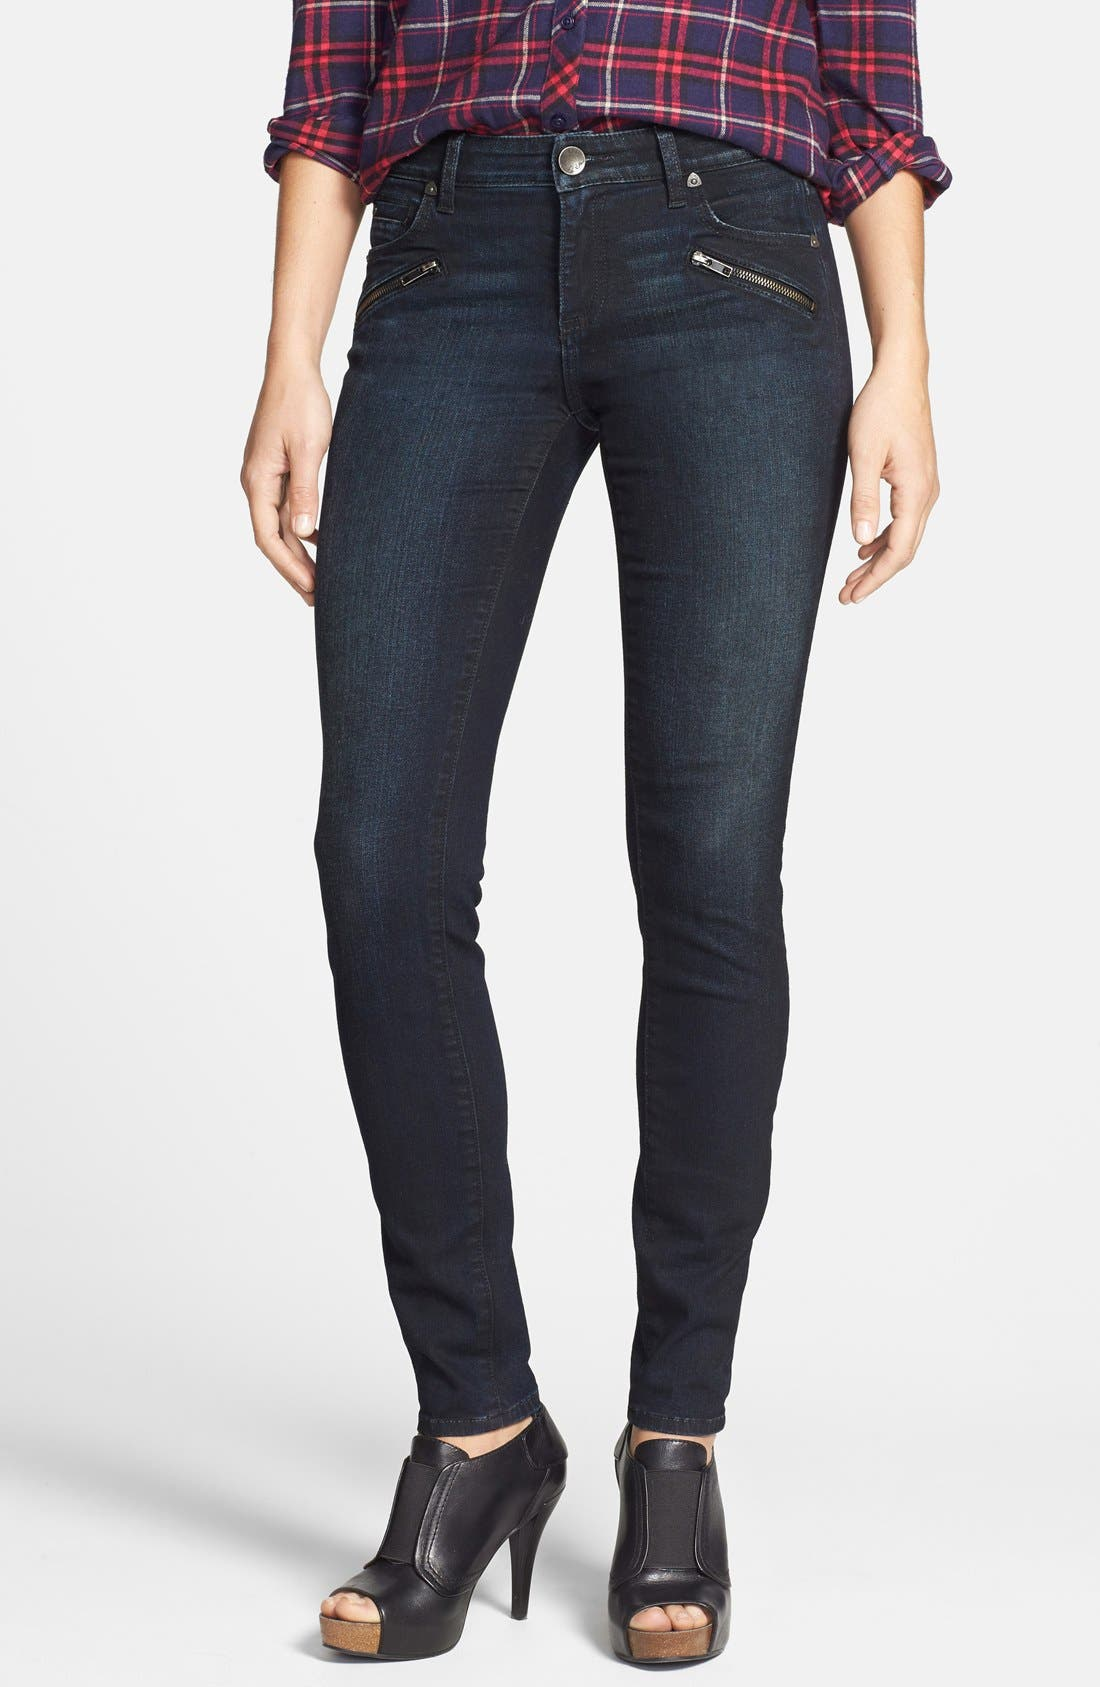 Main Image - KUT from the Kloth 'Diana' Zip Detail Stretch Skinny Jeans (Privileged)